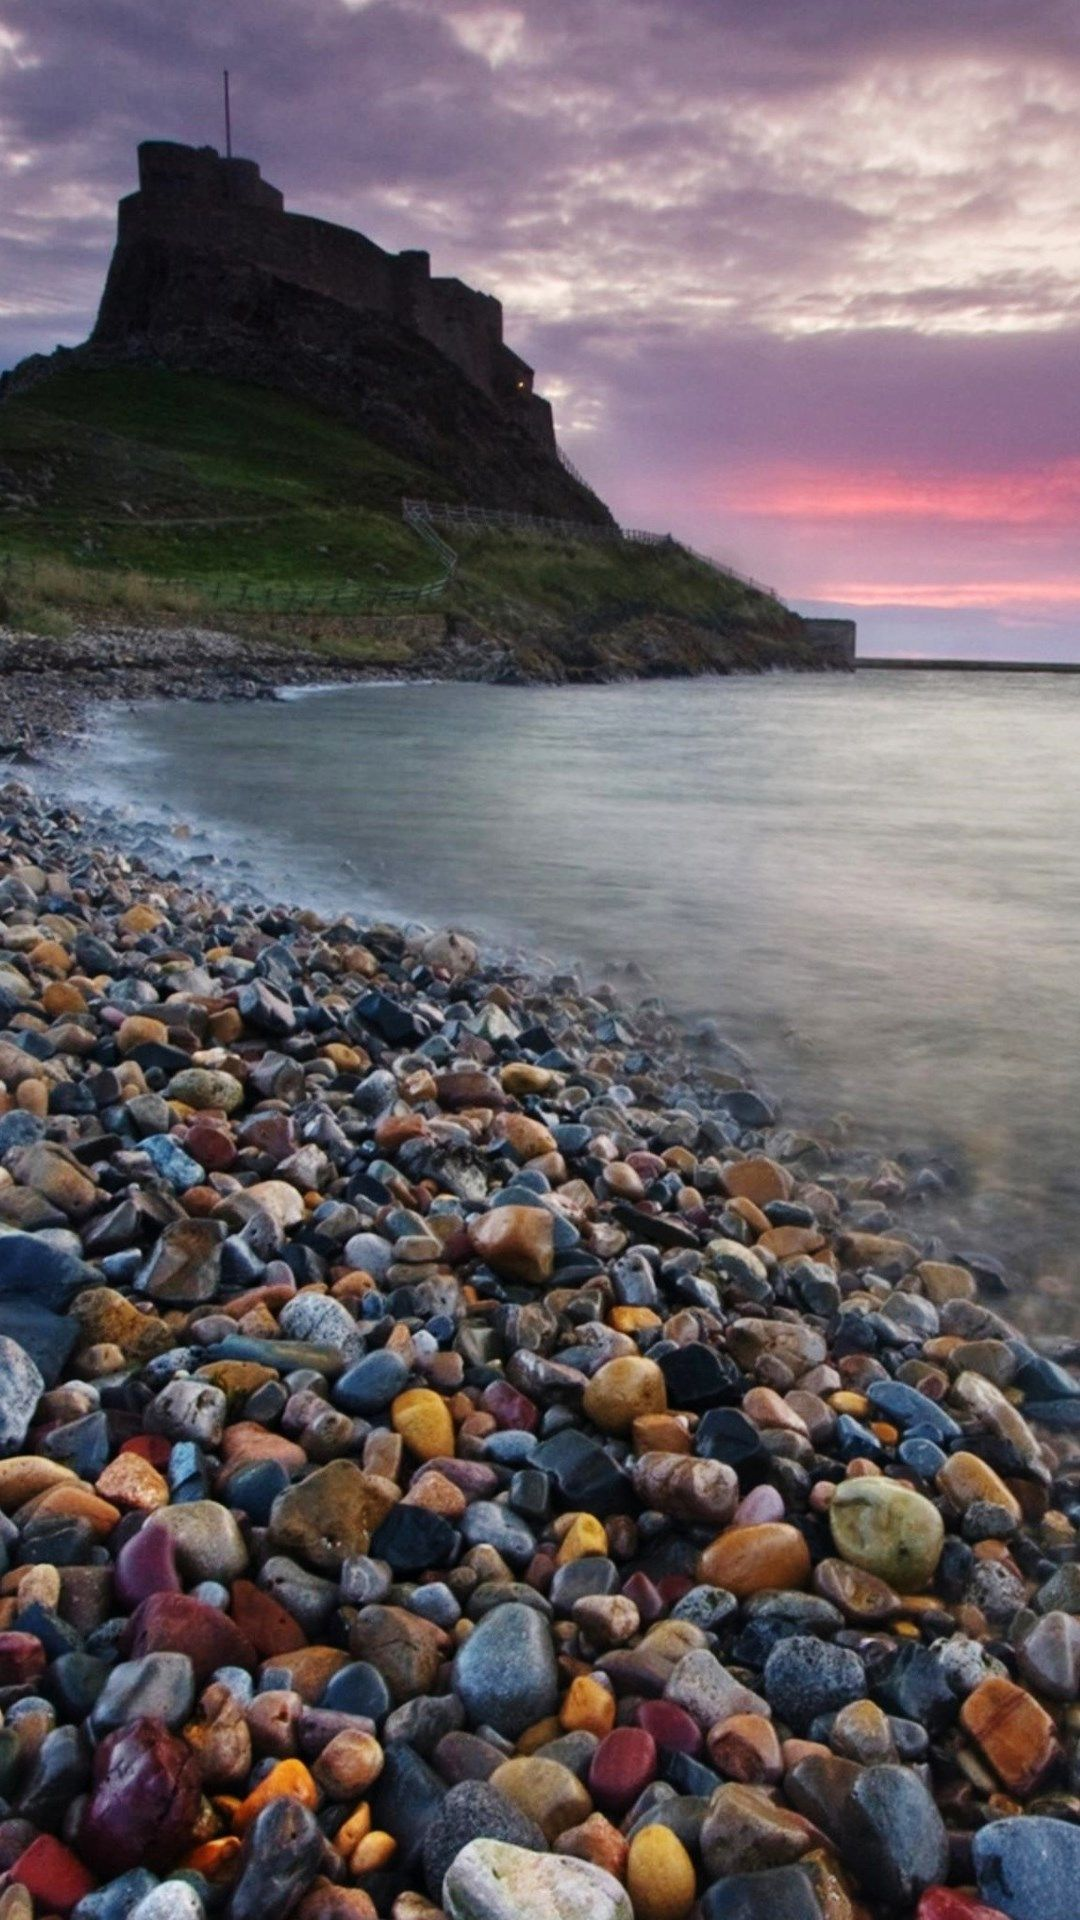 Tap And Get The Free App Landscapes Stone Beach Colorful Beautiful Nature Sunset Bay Mountain Rock Wave Hd Iphone 6 Nature Wallpaper Stone Wallpaper Nature